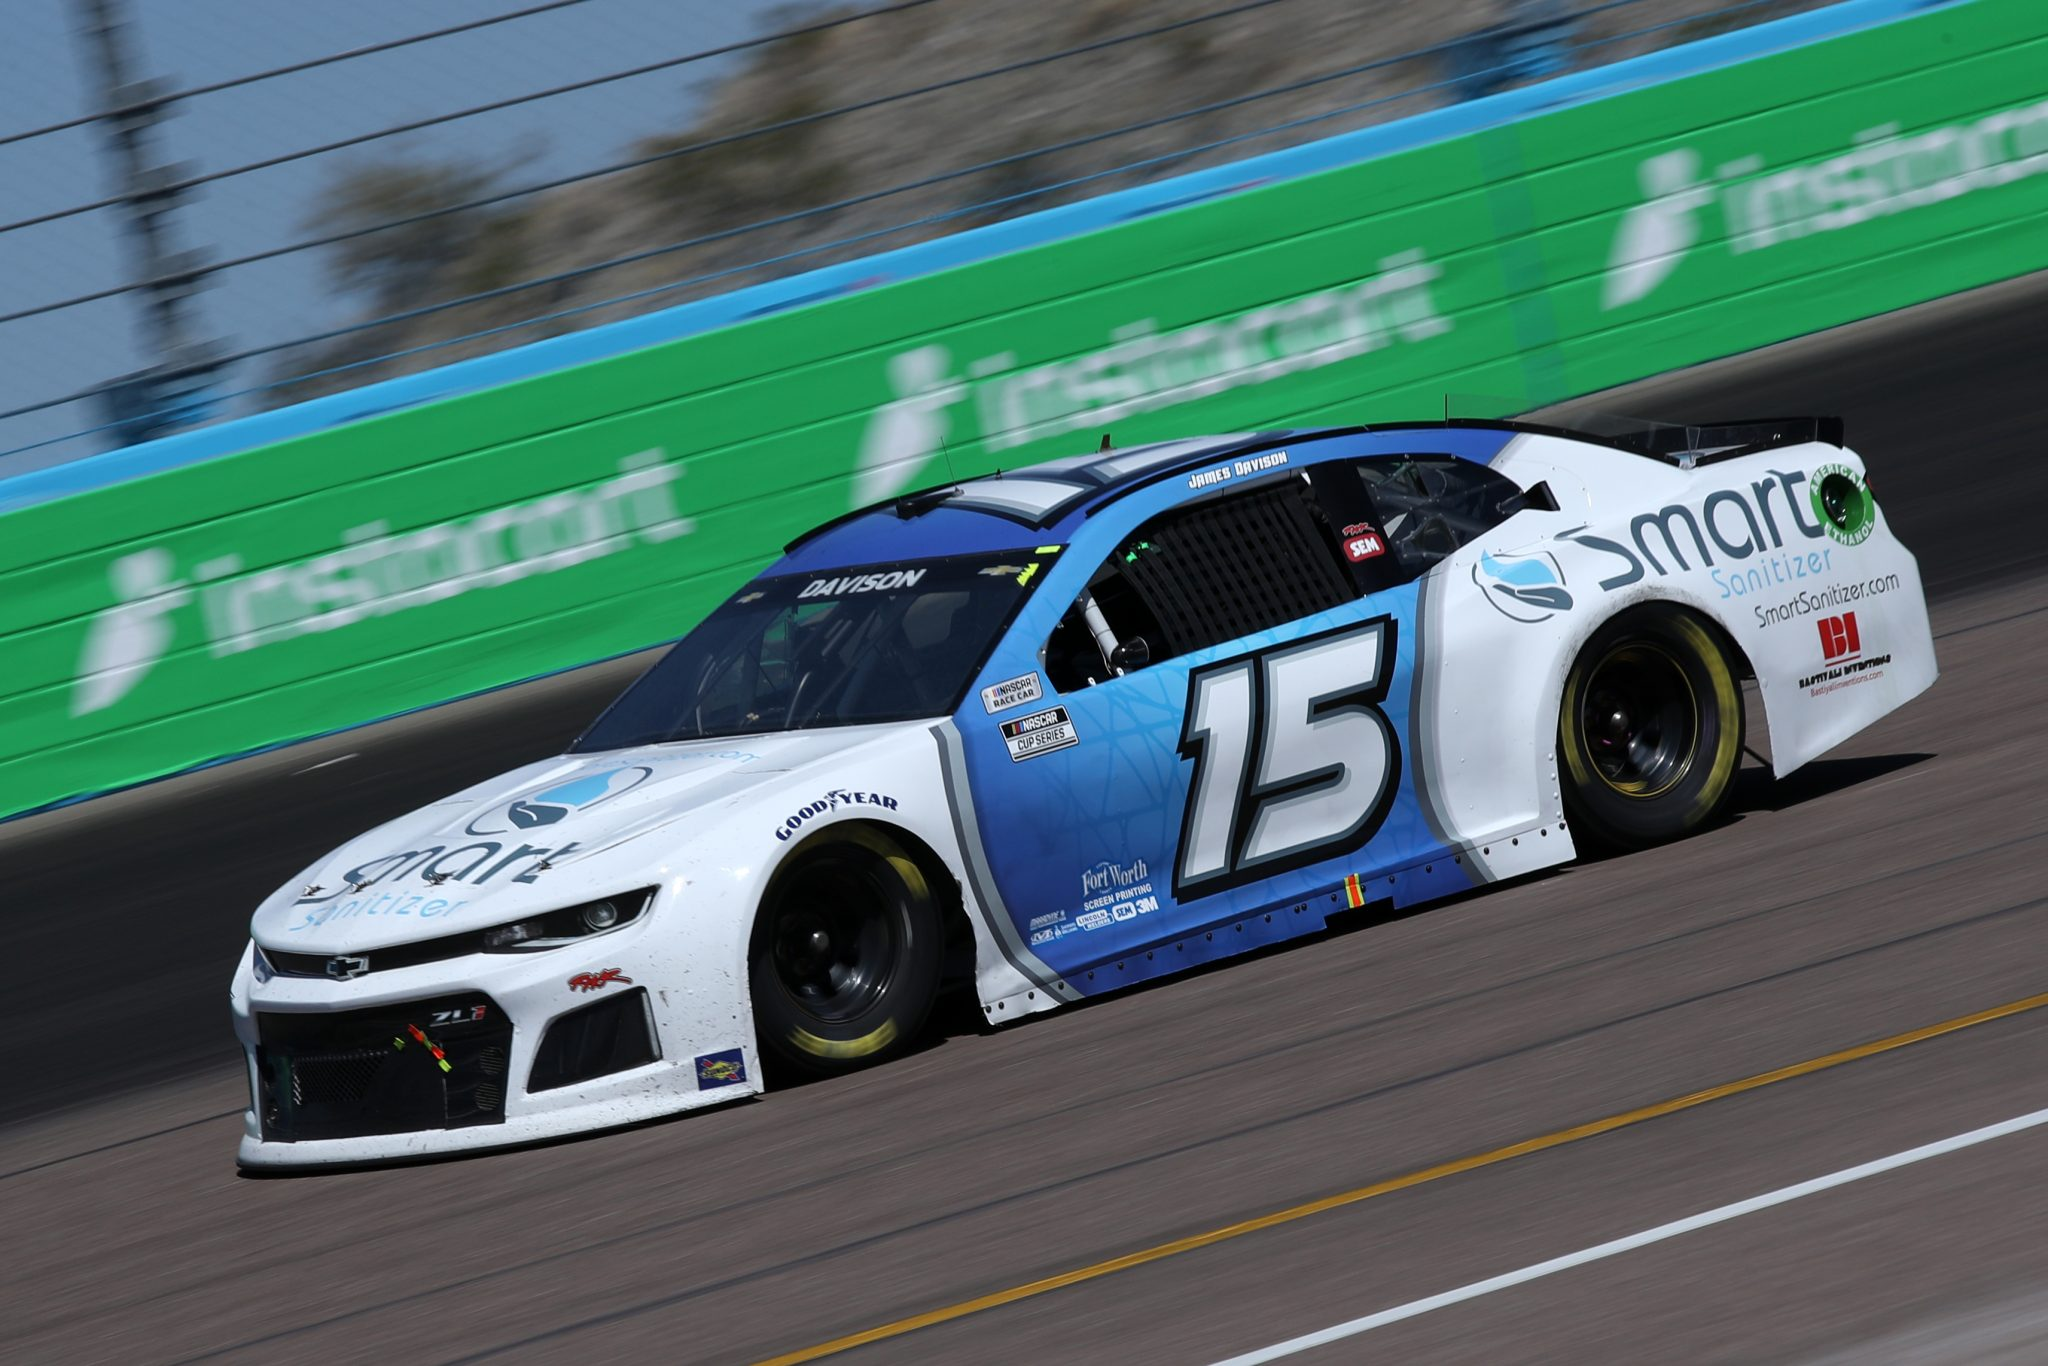 AVONDALE, ARIZONA - MARCH 14: James Davison, driver of the #15 Smart Sanitizer Chevrolet, drives during the NASCAR Cup Series Instacart 500 at Phoenix Raceway on March 14, 2021 in Avondale, Arizona. (Photo by Sean Gardner/Getty Images) | Getty Images